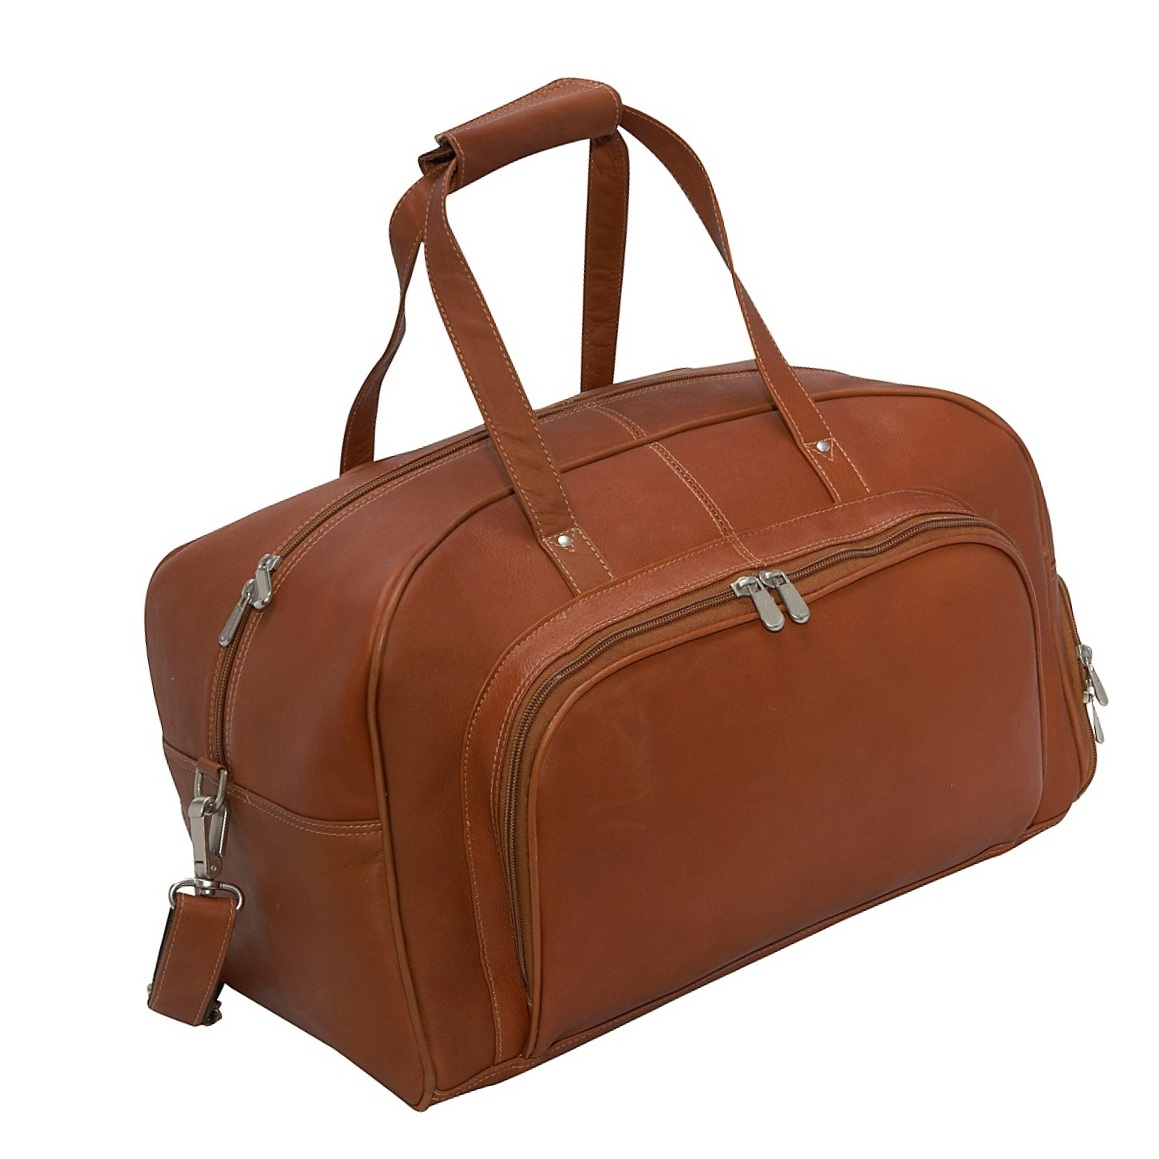 Unisex Leather Travel Carryon Duffle Bag Weekend Bag For Men And Women